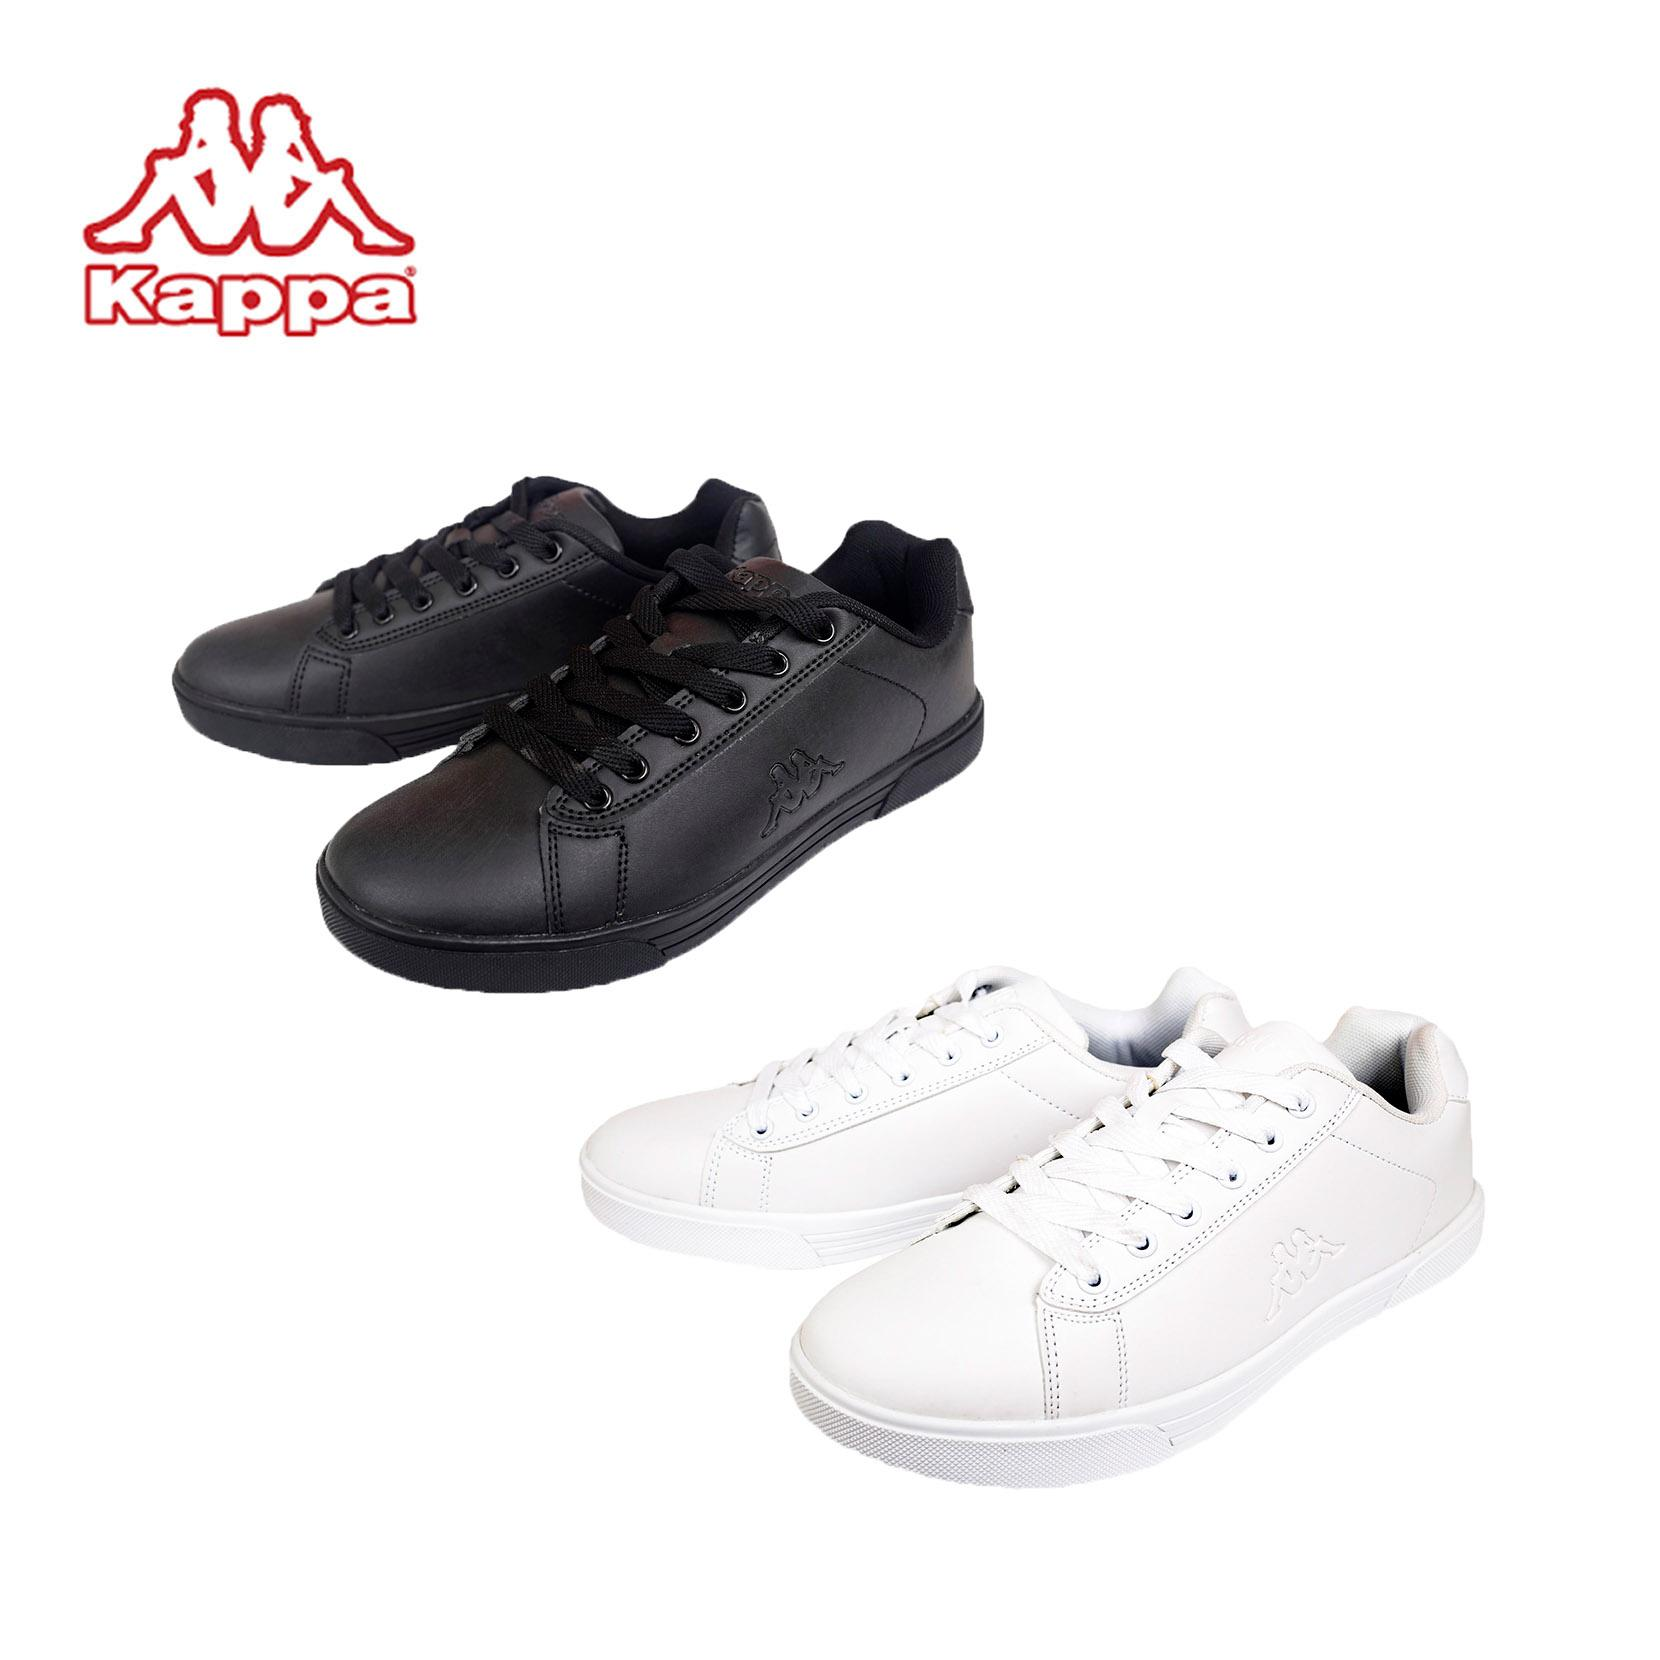 cheapest place to buy shoes online